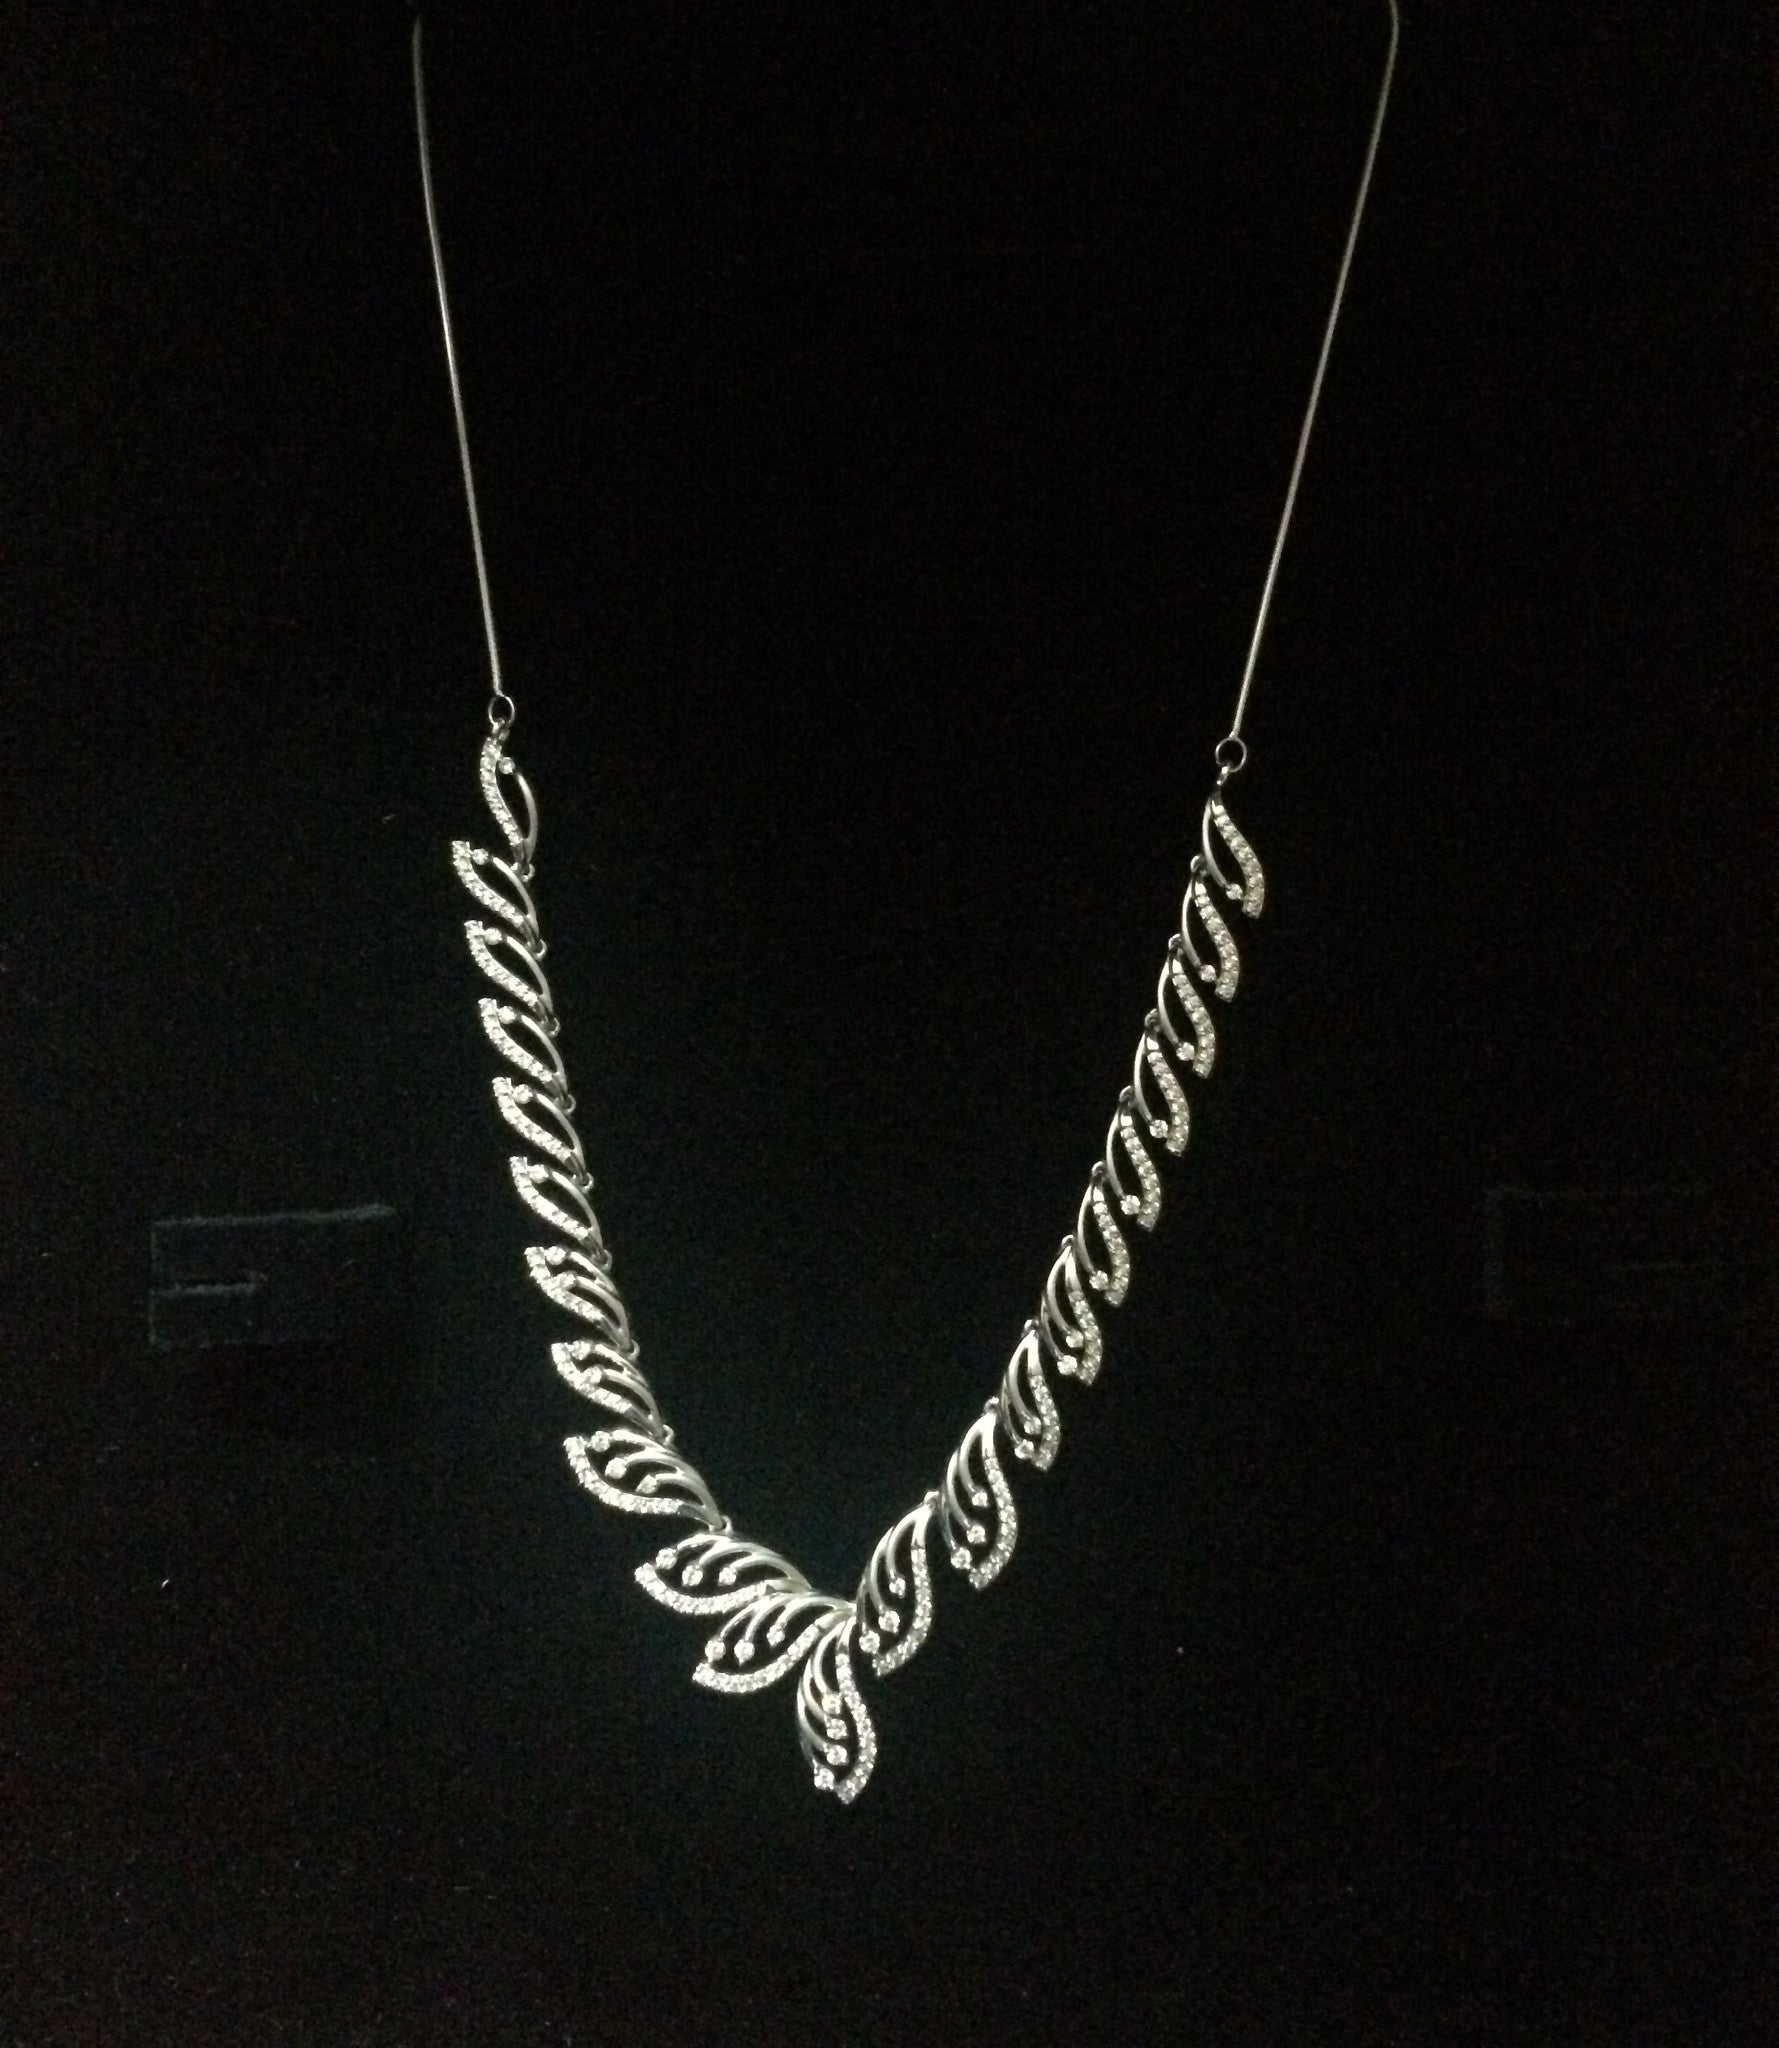 Super Sale - Platinum Necklace with Diamonds JL PT N33 - Suranas Jewelove